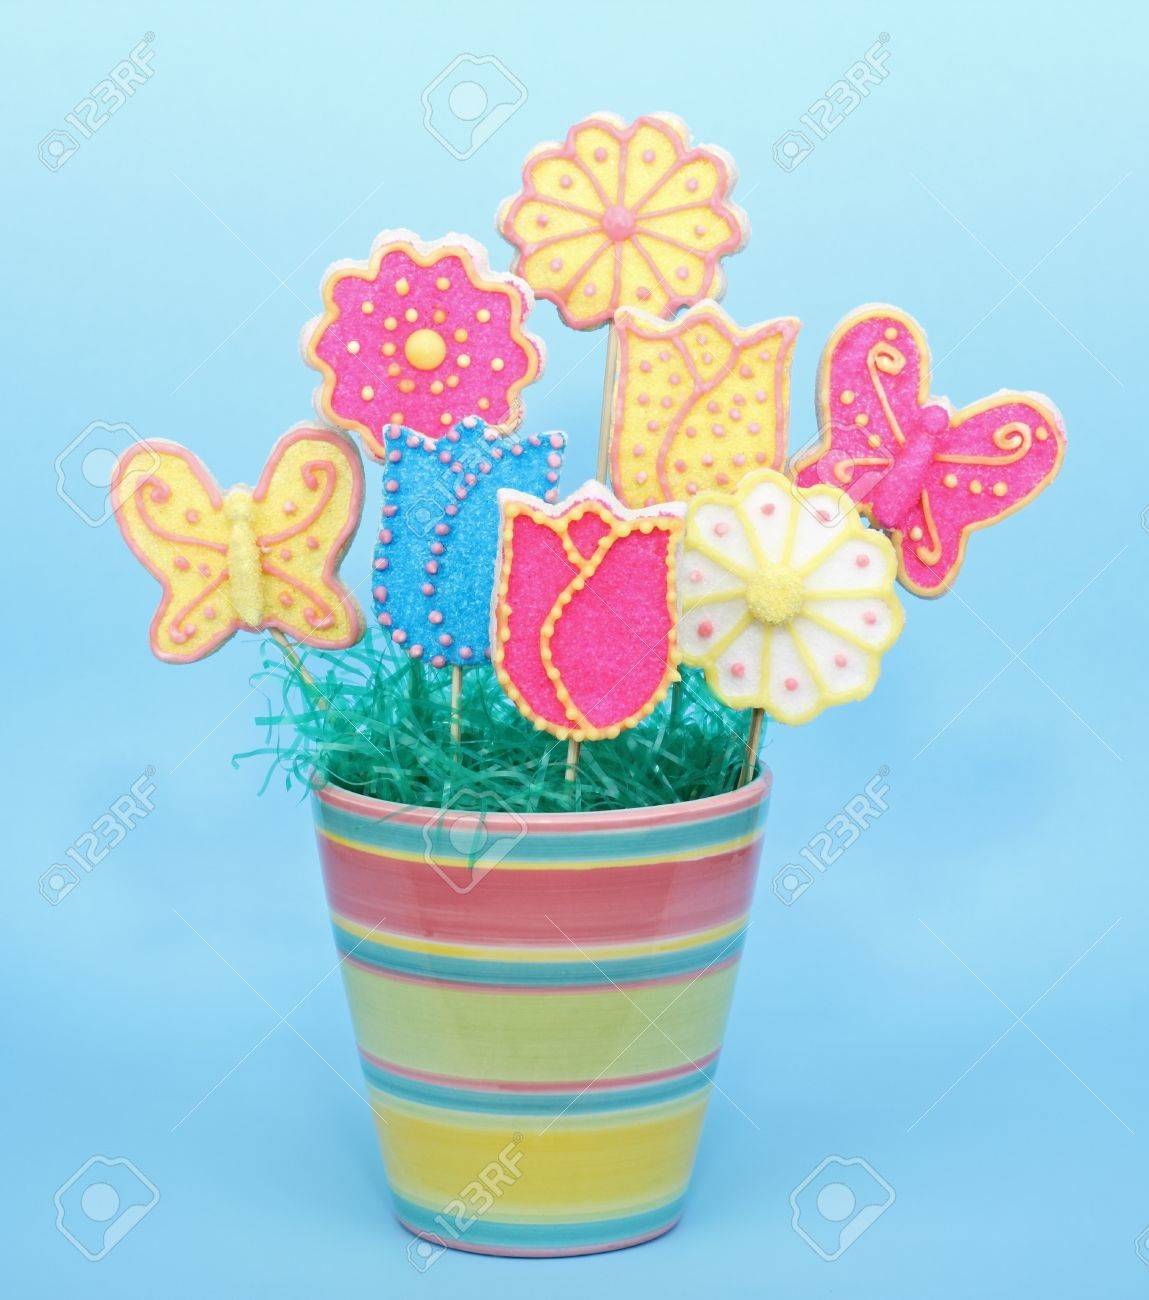 239 & Sugar cookies in a flower pot on a blue background